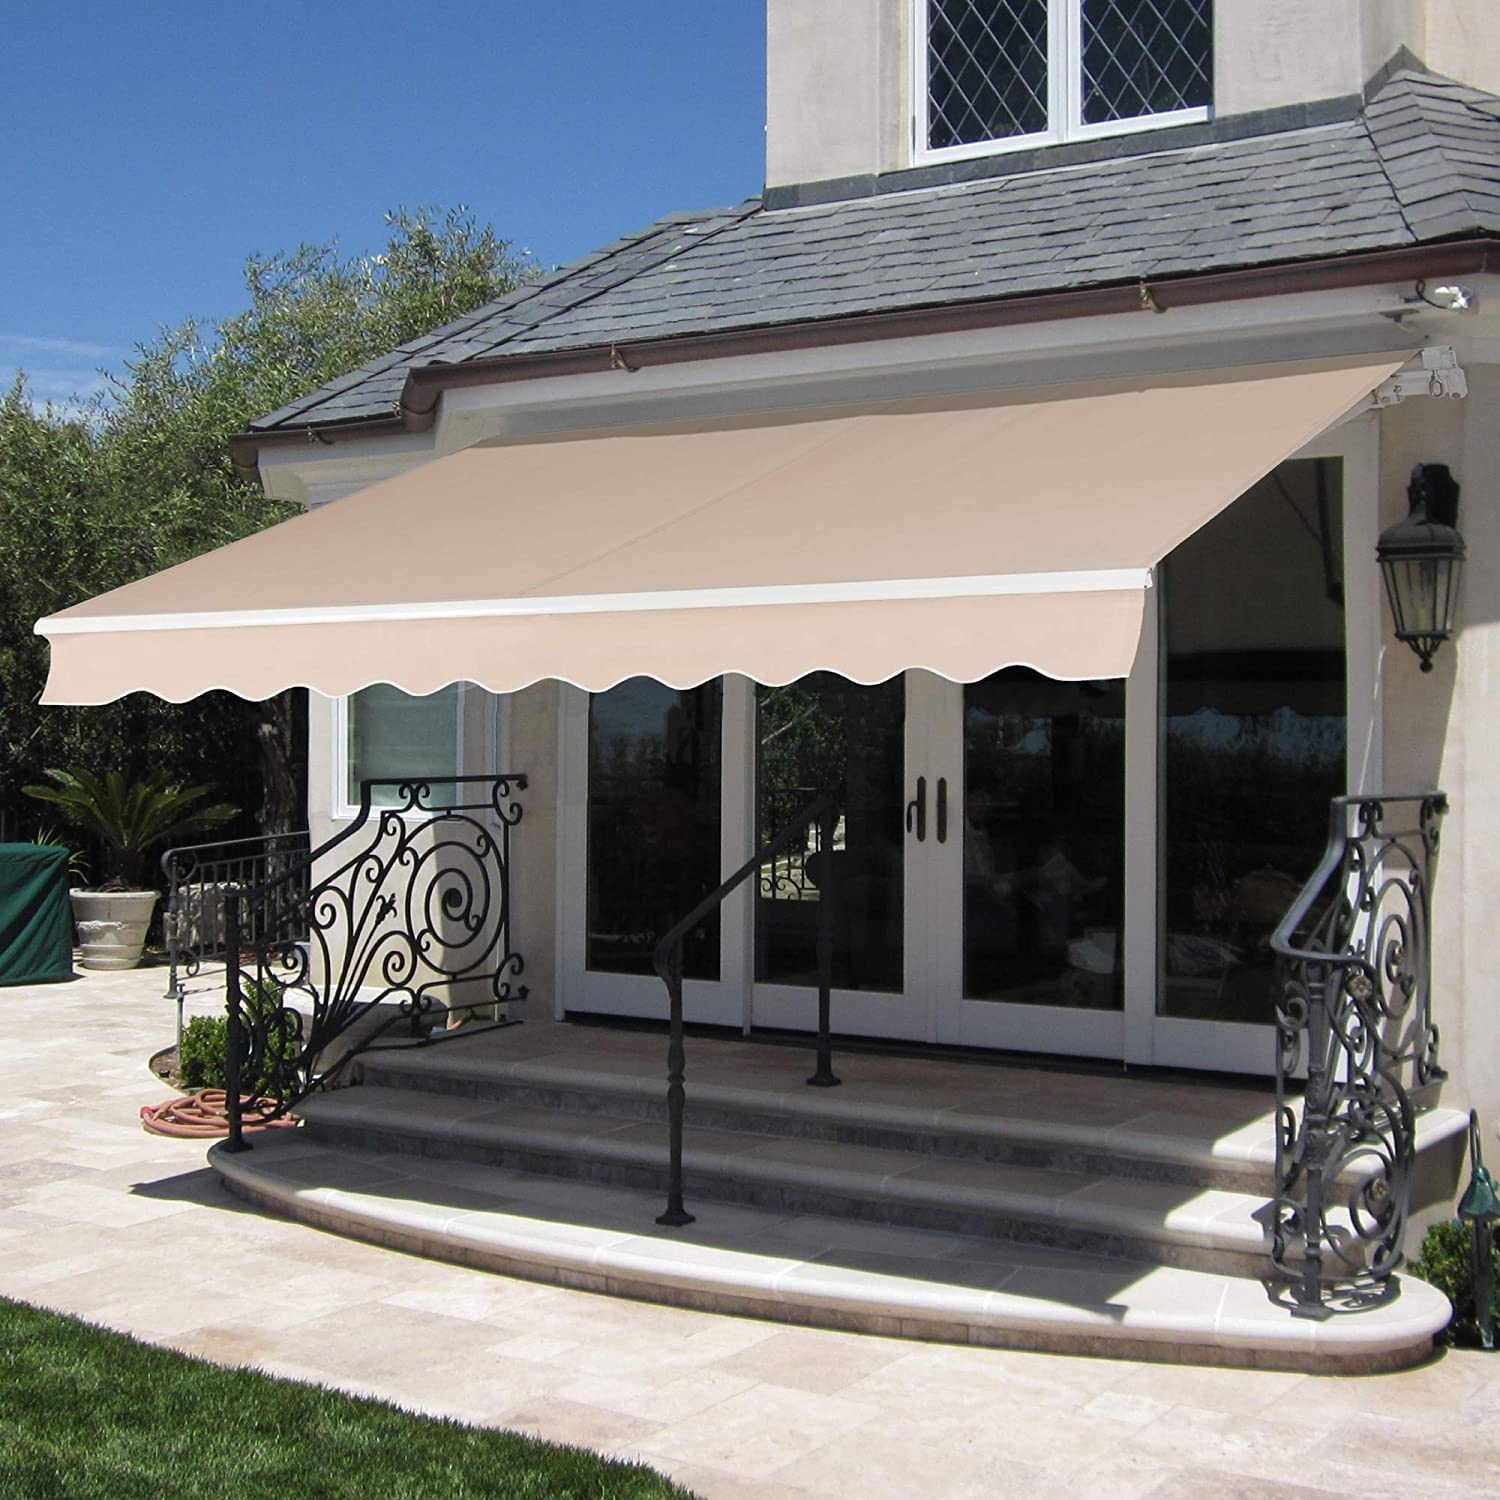 Best Choice Products 20x20in Retractable Awning, Aluminum Polyester Sun  Shade Cover for Patio, Balcony w/UV & Water Resistant Fabric and Crank  Handle ...